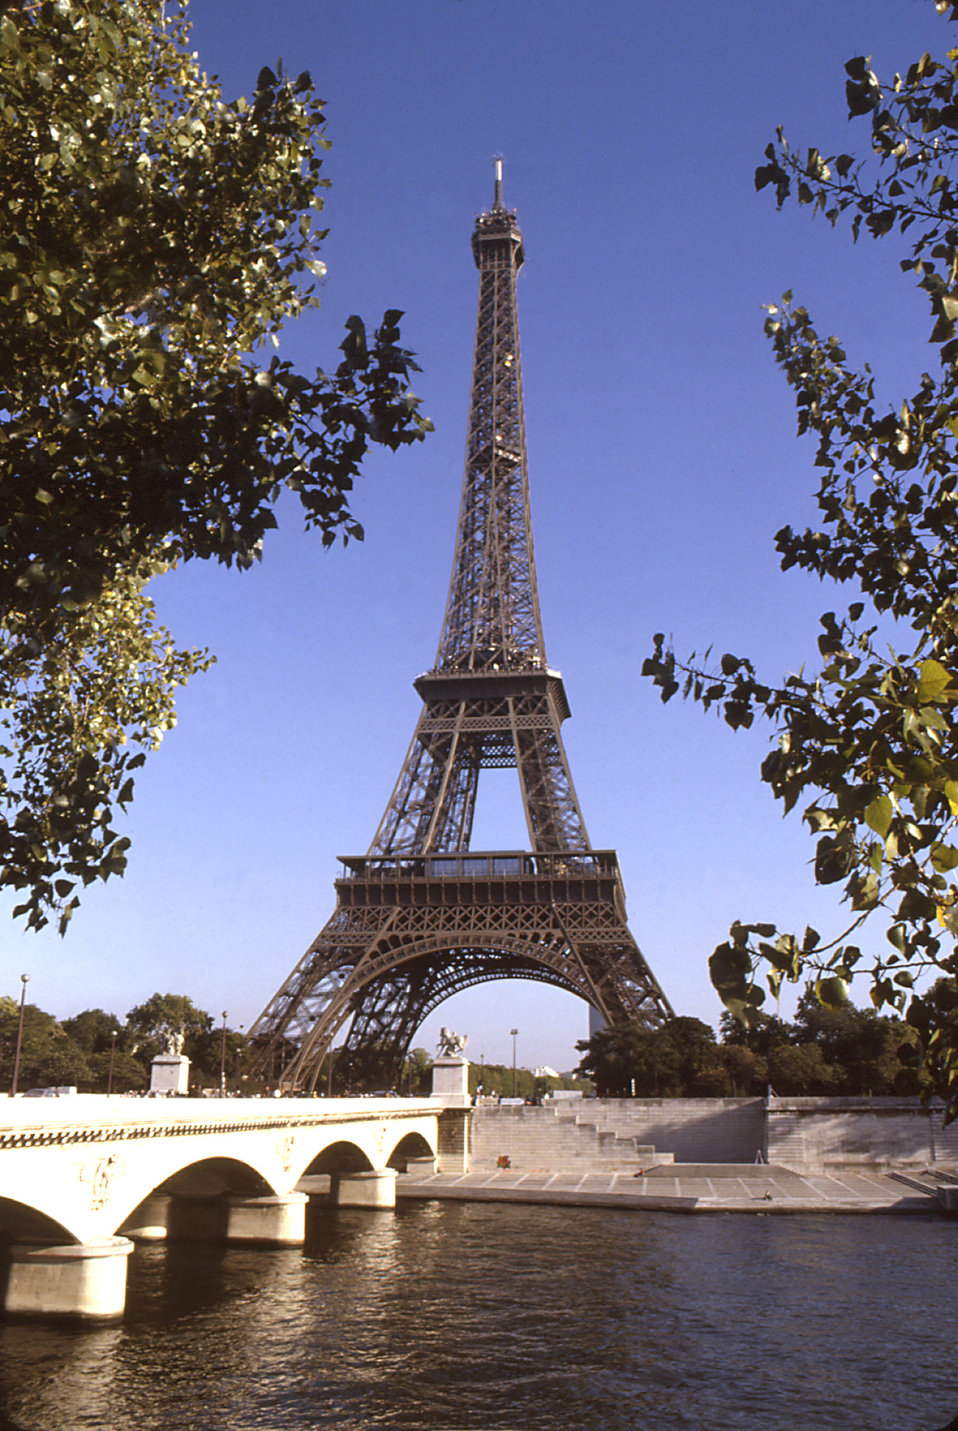 Most Popular Countries >> Public Domain Picture | The Eiffel Tower in Paris, France | ID: 13392945619798 ...